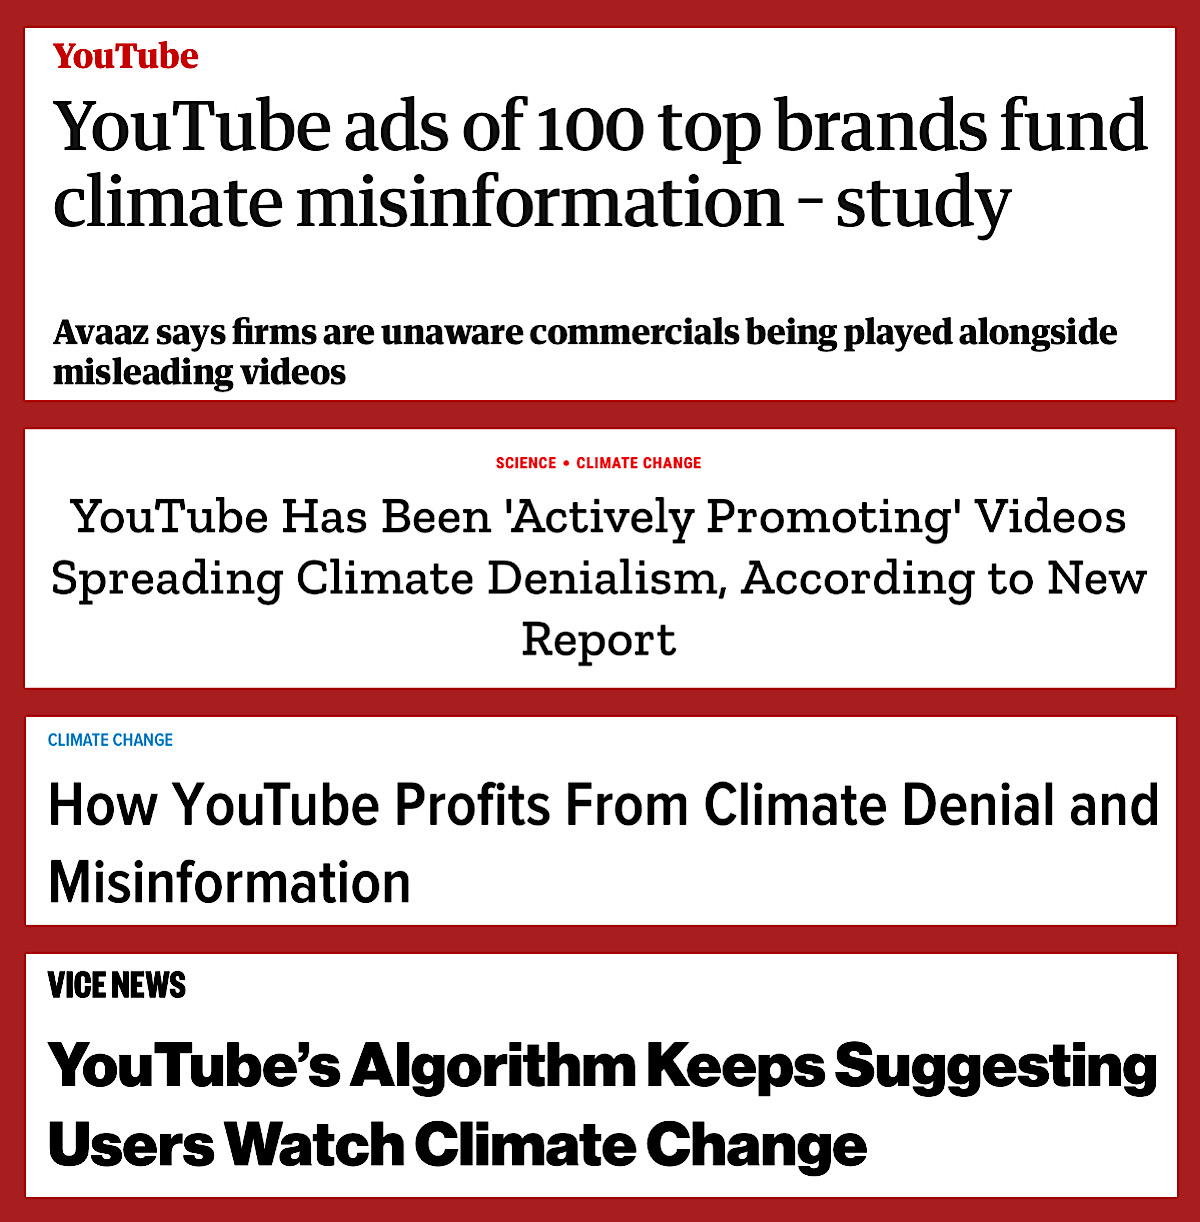 Legacy media outlets claim that this flawed study shows YouTube is recommending, funding, and profiting from climate change misinformation (The Guardian, Time, Gizmodo, Vice)